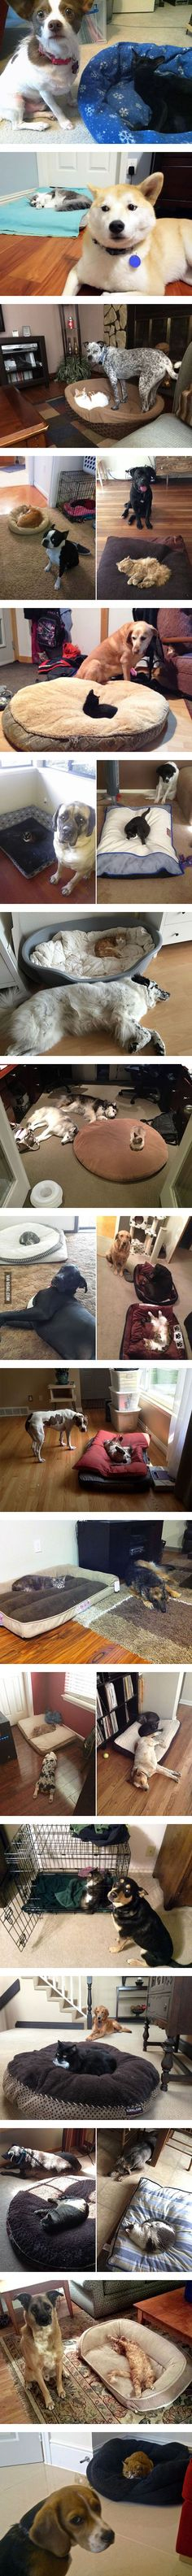 Dog beds stolen by cats #Imgur